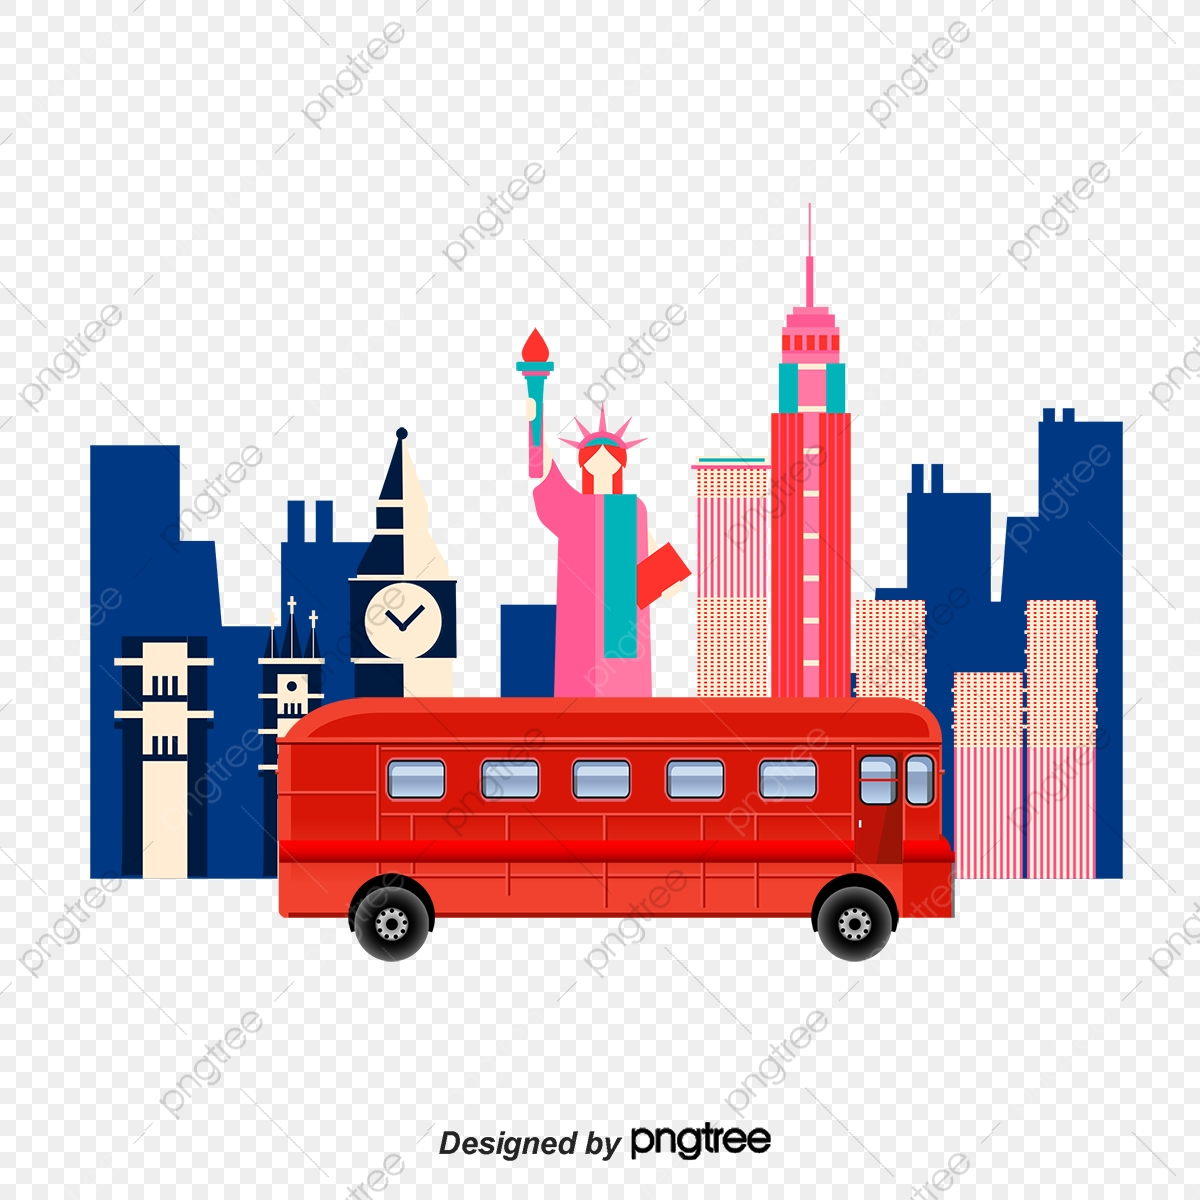 Philippine Traditional Transportation Travel Tourist Bus Transportation Clipart Philippines Traditional Traffic Png Transparent Clipart Image And Psd File For Free Download